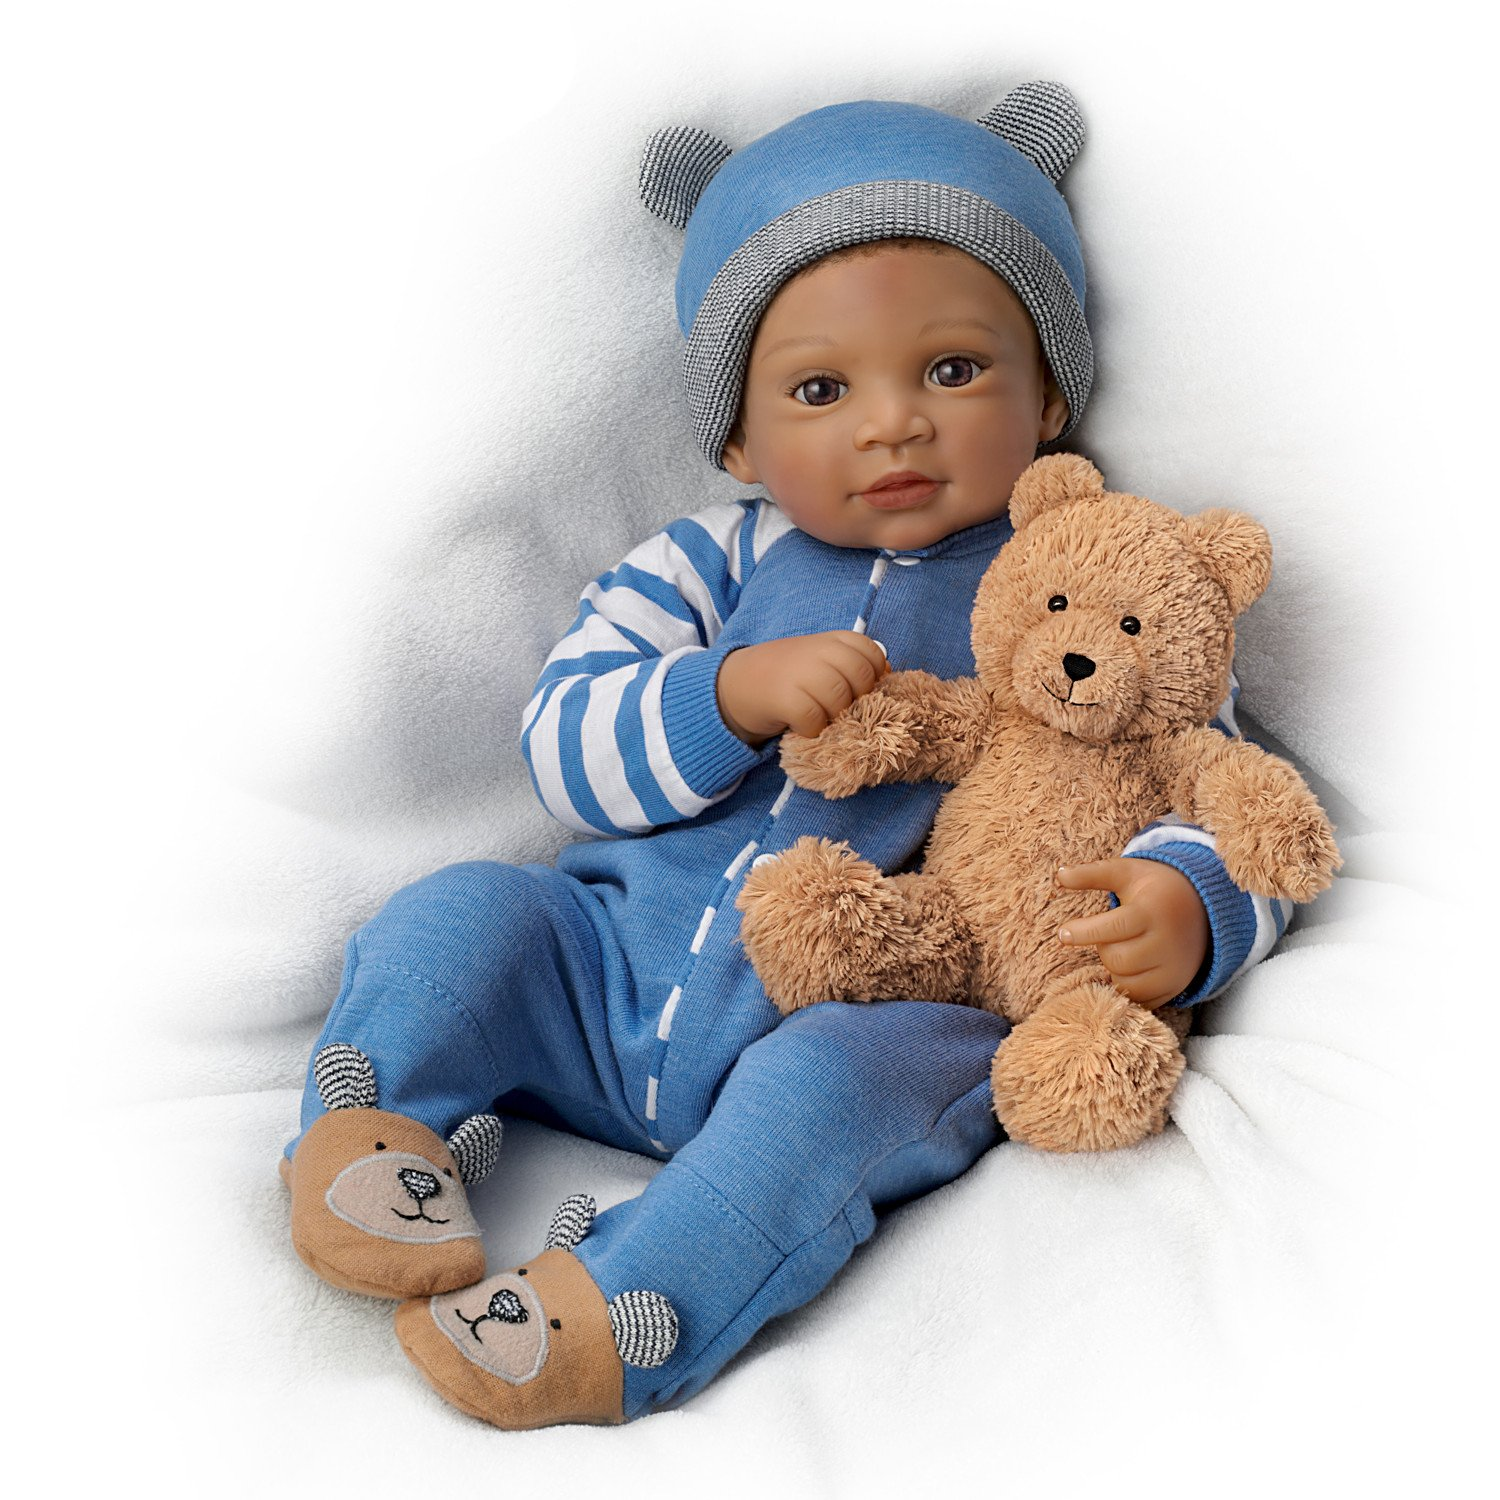 19'' Waltraud Hanl Weighted and Poseable Baby Boy Doll with Plush Bear by The Ashton-Drake Galleries by The Ashton-Drake Galleries